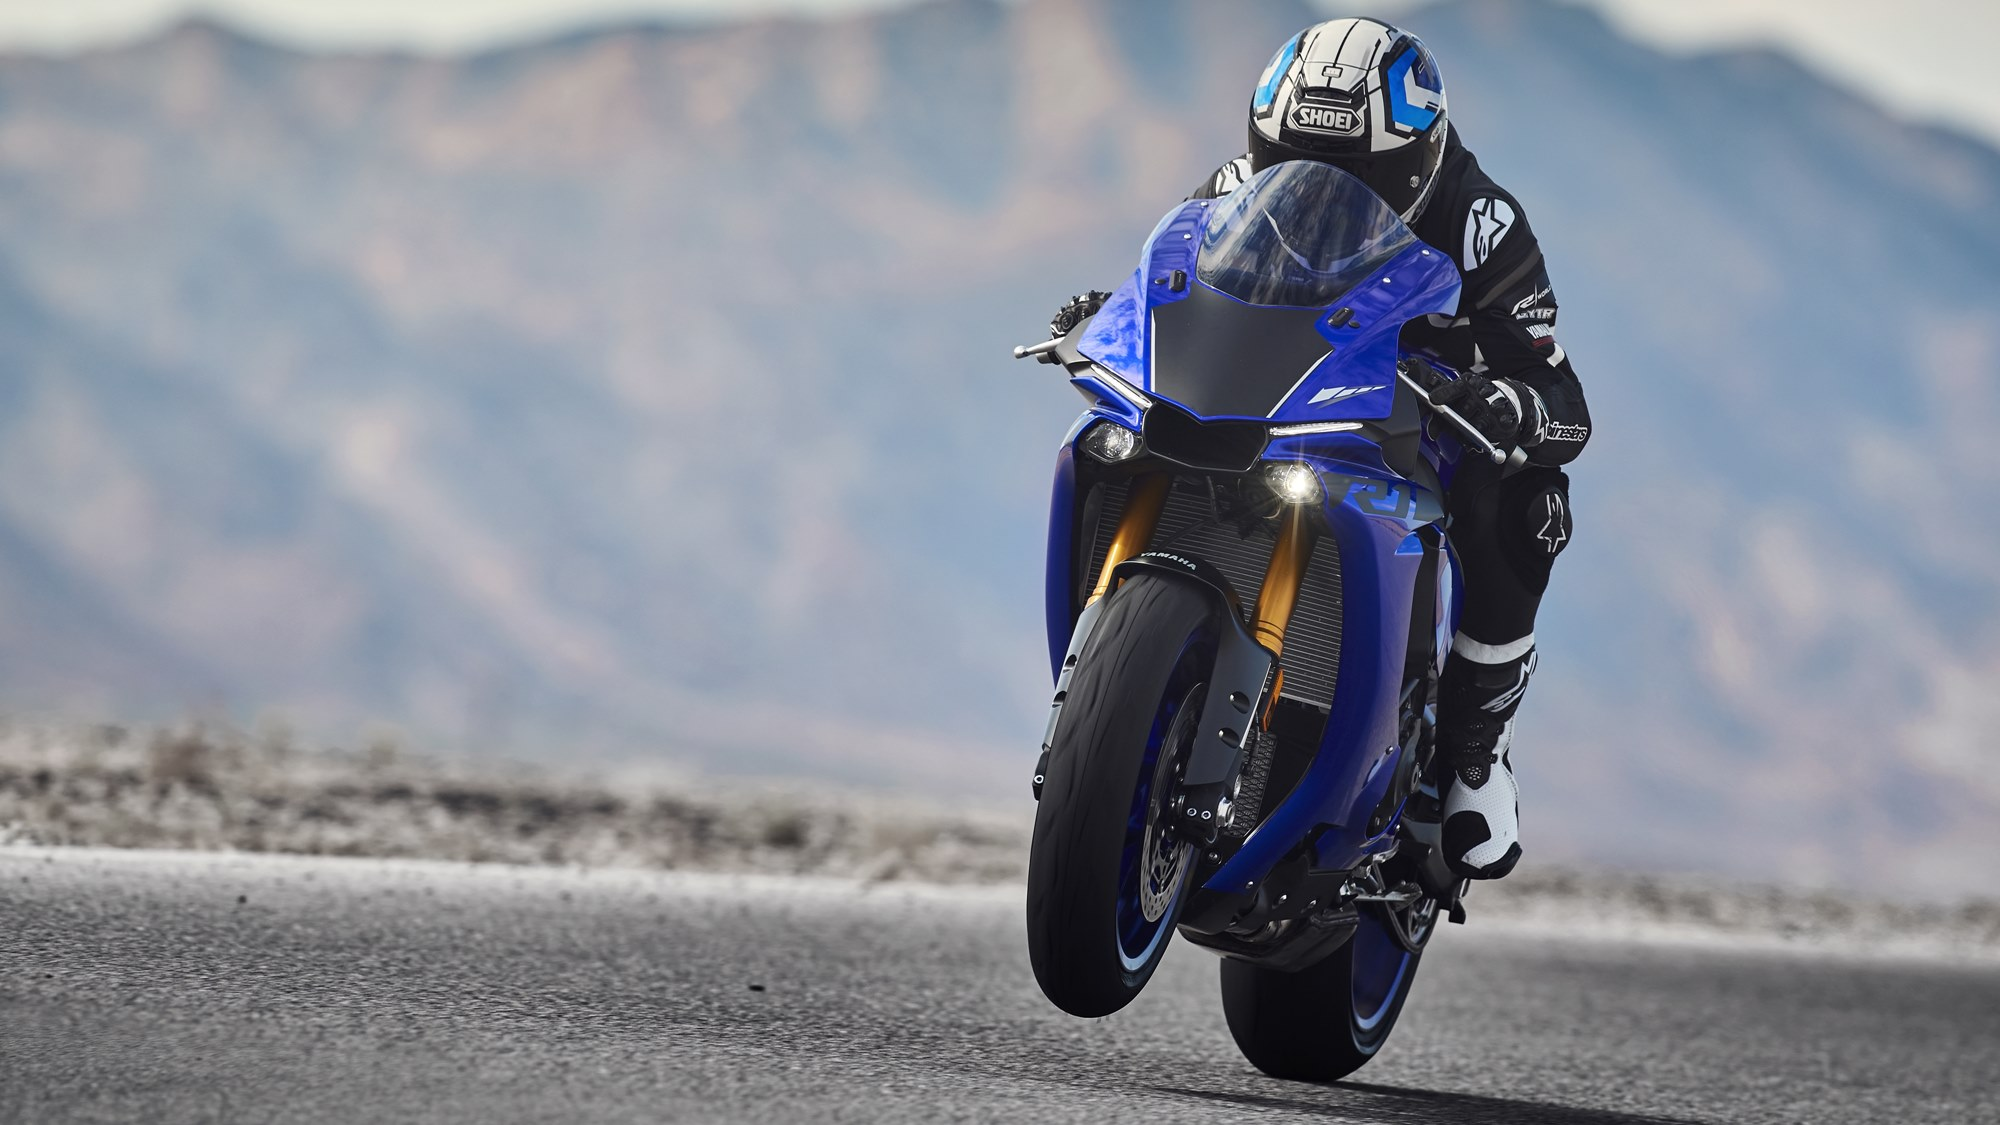 2018 Yamaha YZF-R1 launched at Rs. 20.73 lakh in India | IAMABIKER